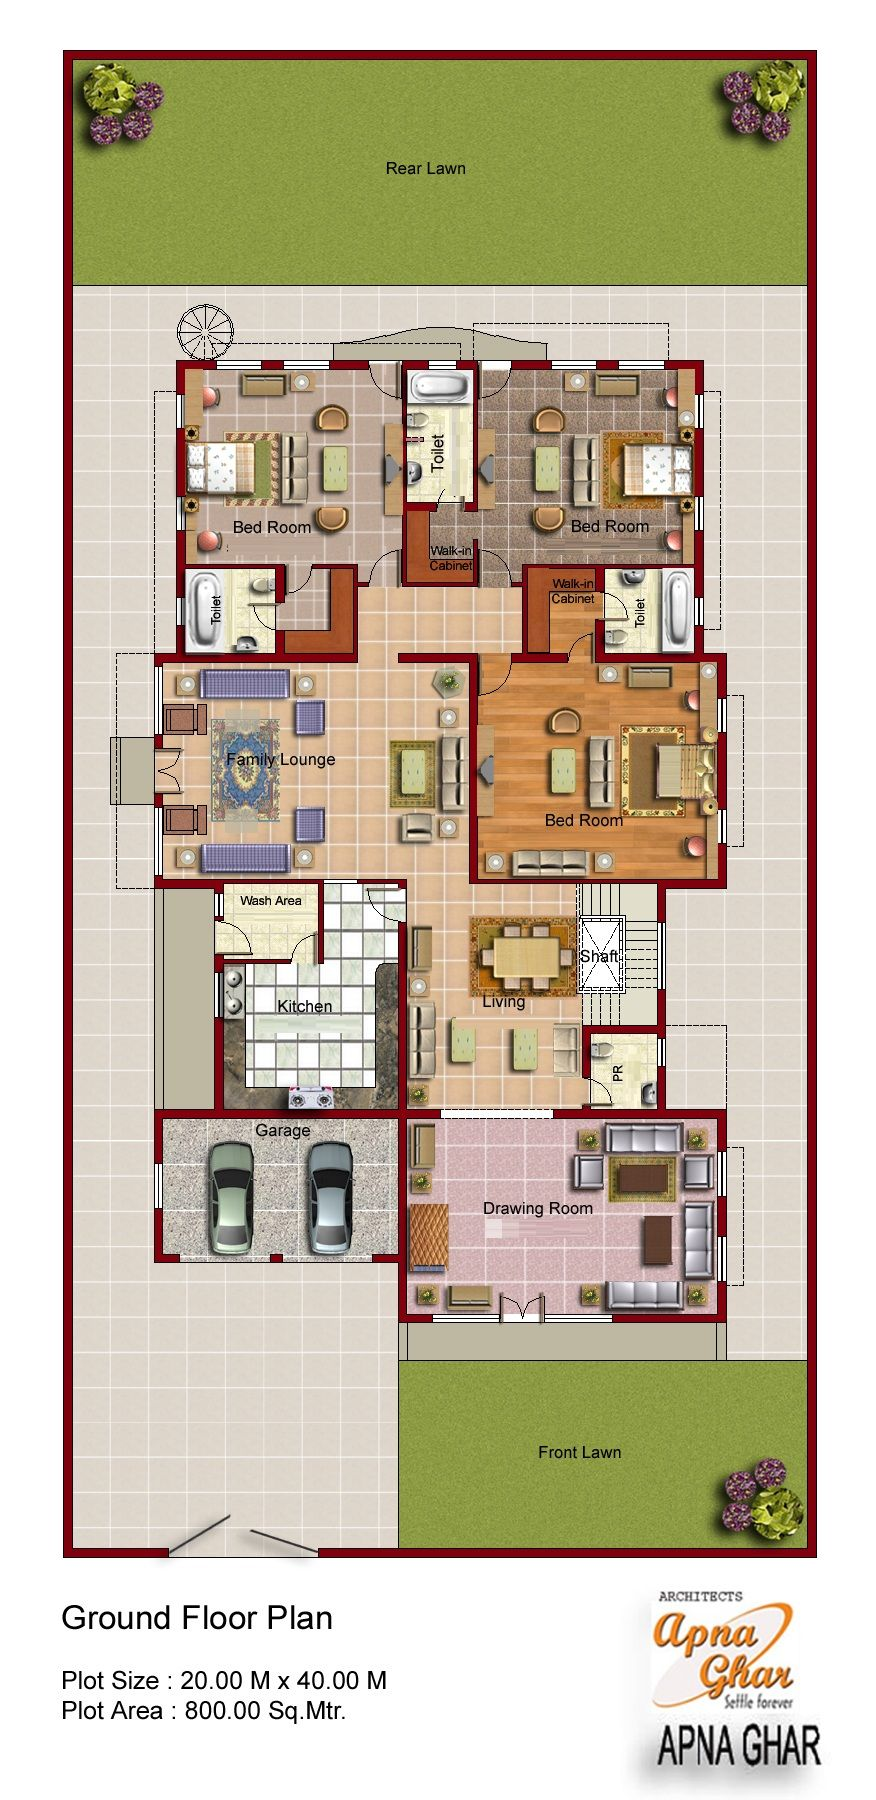 2d floor plan for modern duplex 2 floor house area 800 sq m 20mx40m click on this link Home design layout ideas